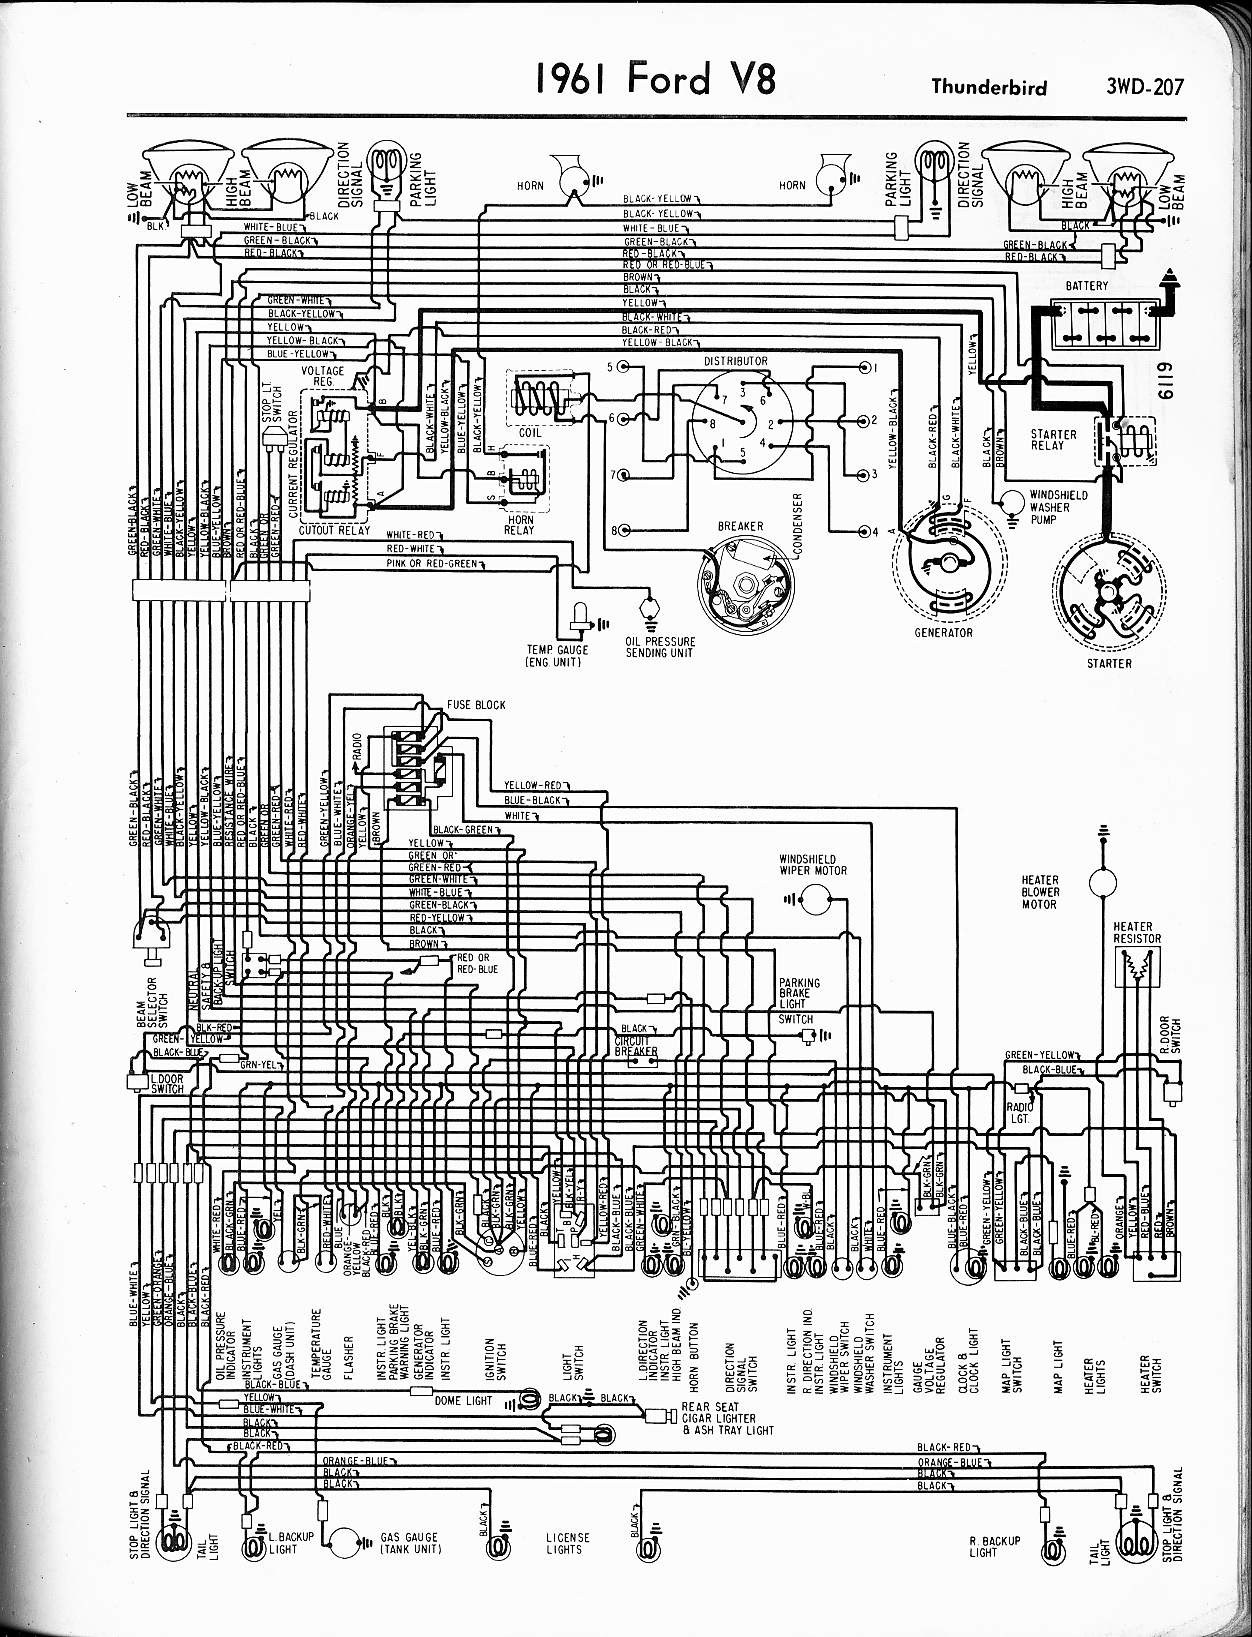 2006 Mercury Monterey Fuse Diagram